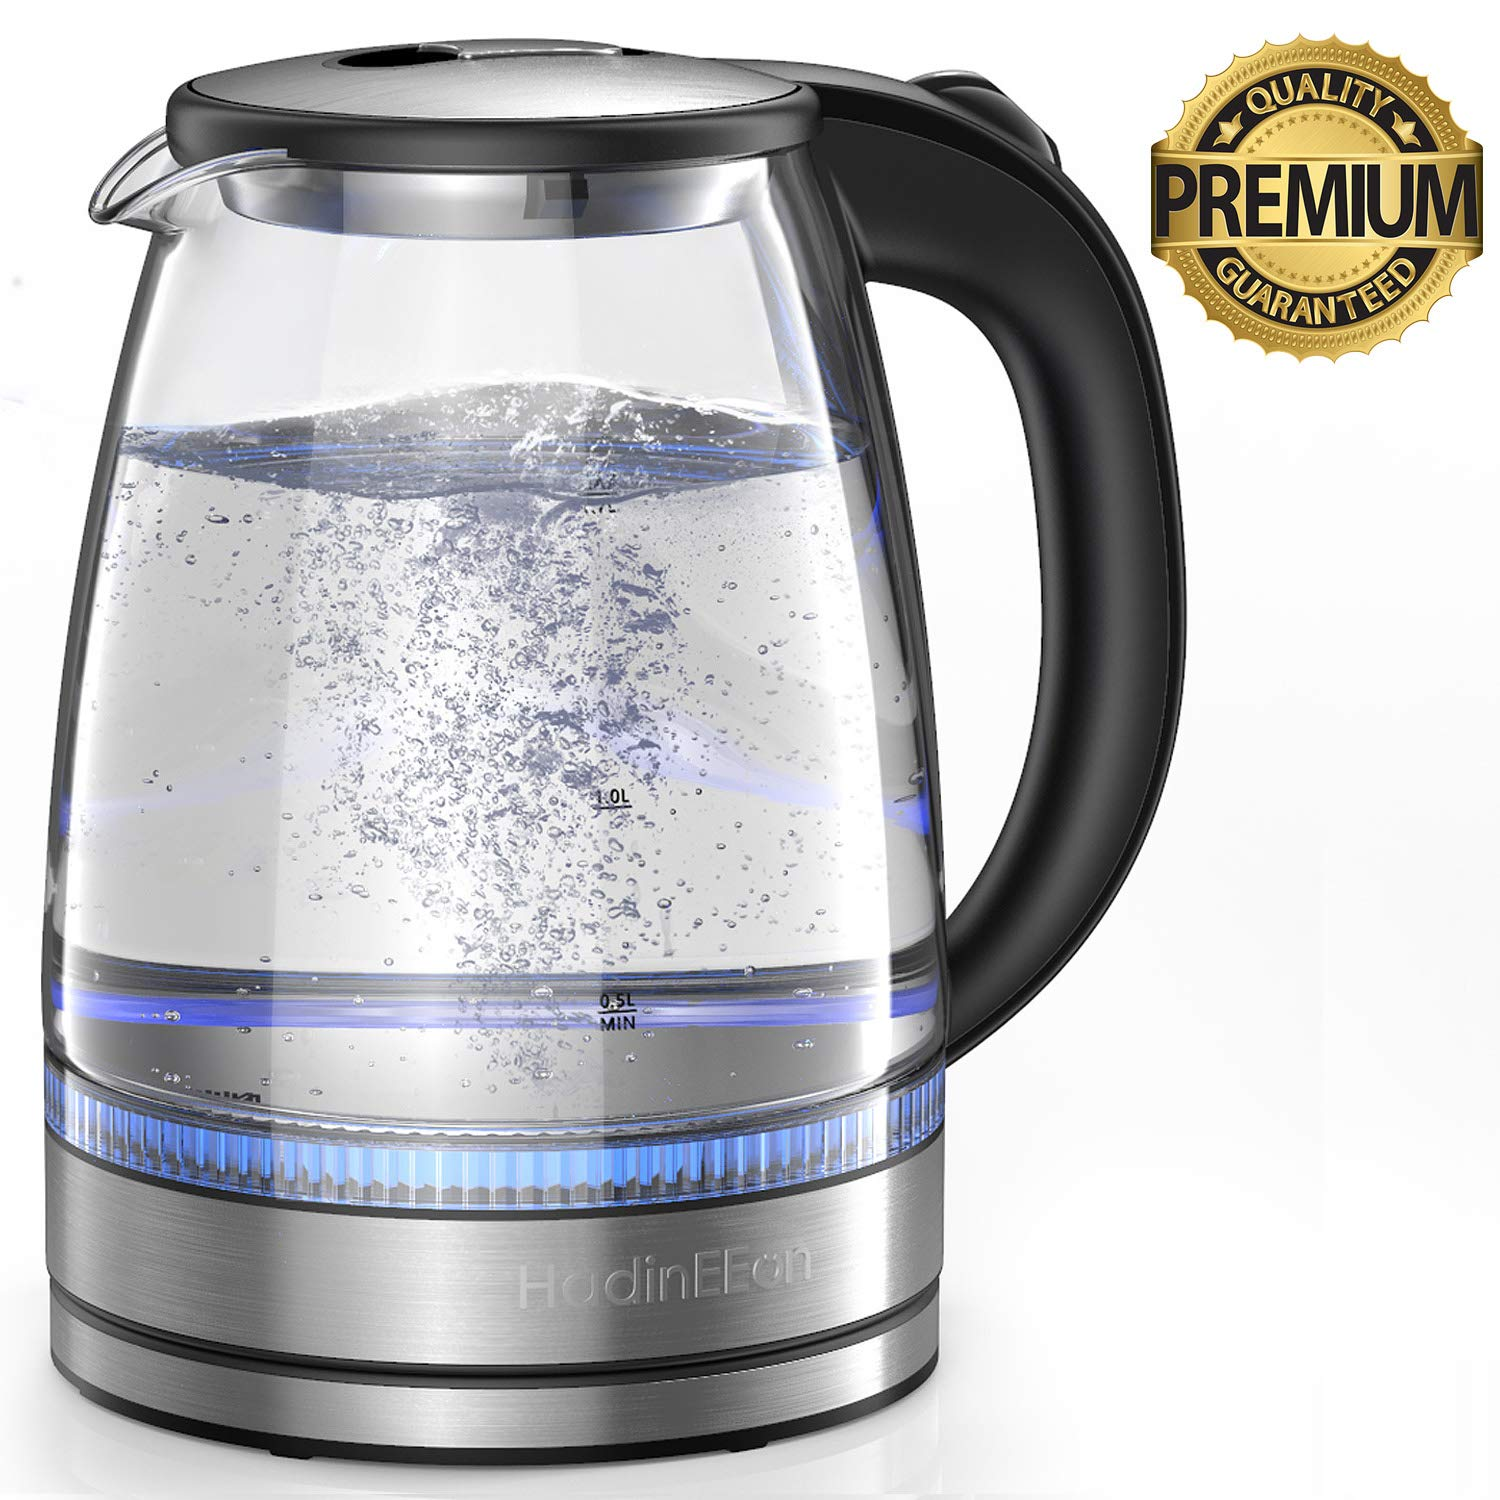 HadinEEon Electric Kettle 1.7L Glass Electric Tea Kettle (BPA Free) Cordless with LED Indicator Lights, Water Boiler with Boil-Dry Protection, Stainless Steel Inner Lid & Bottom